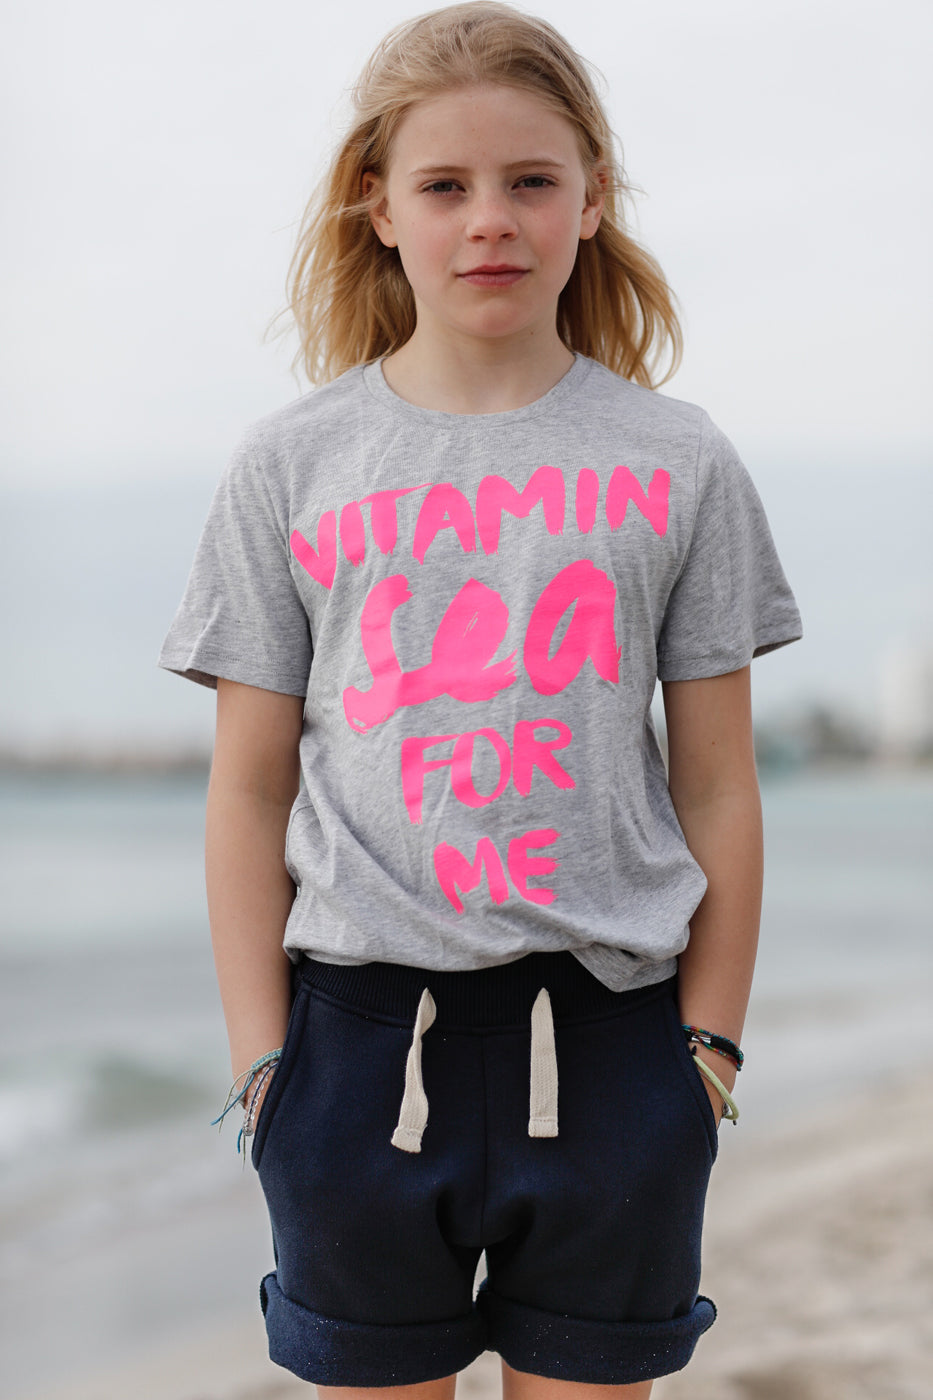 Kinder T-Shirt VITAMIN SEA FOR ME neonpink | ankerherz.de